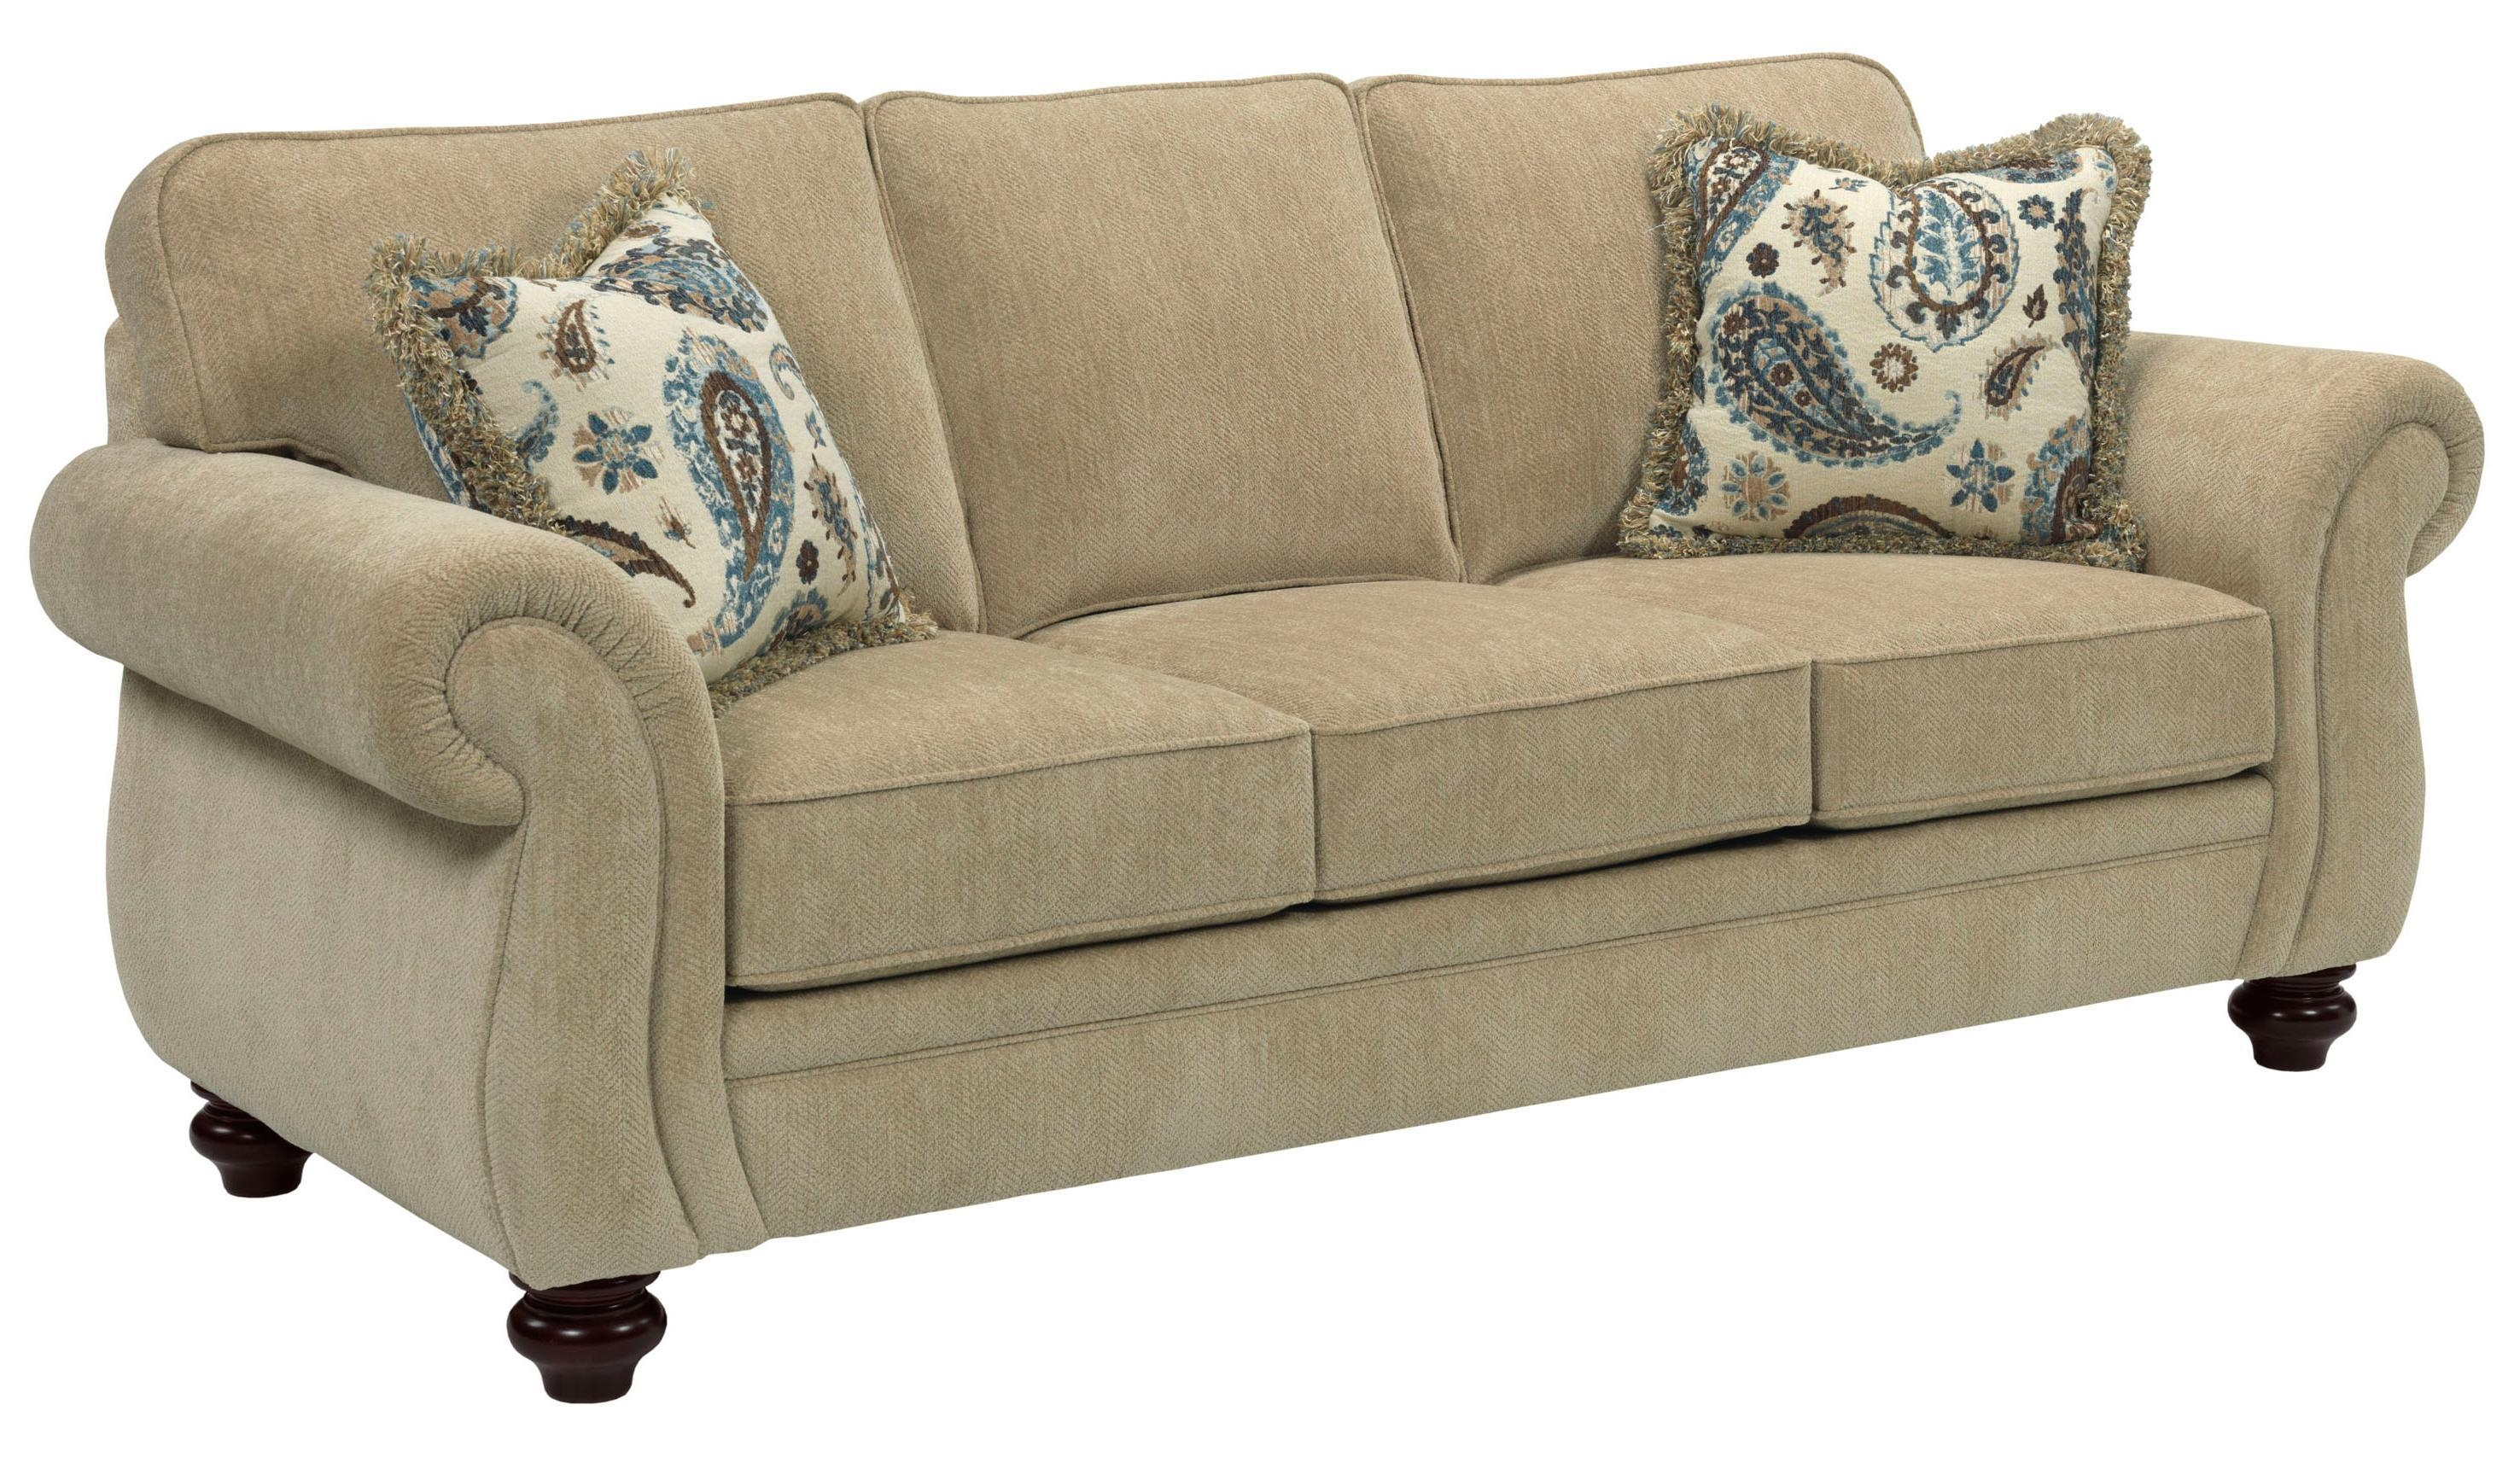 Broyhill Furniture Cassandra Traditional Style Queen Size Throughout Broyhill Harrison Sofas (Image 4 of 20)